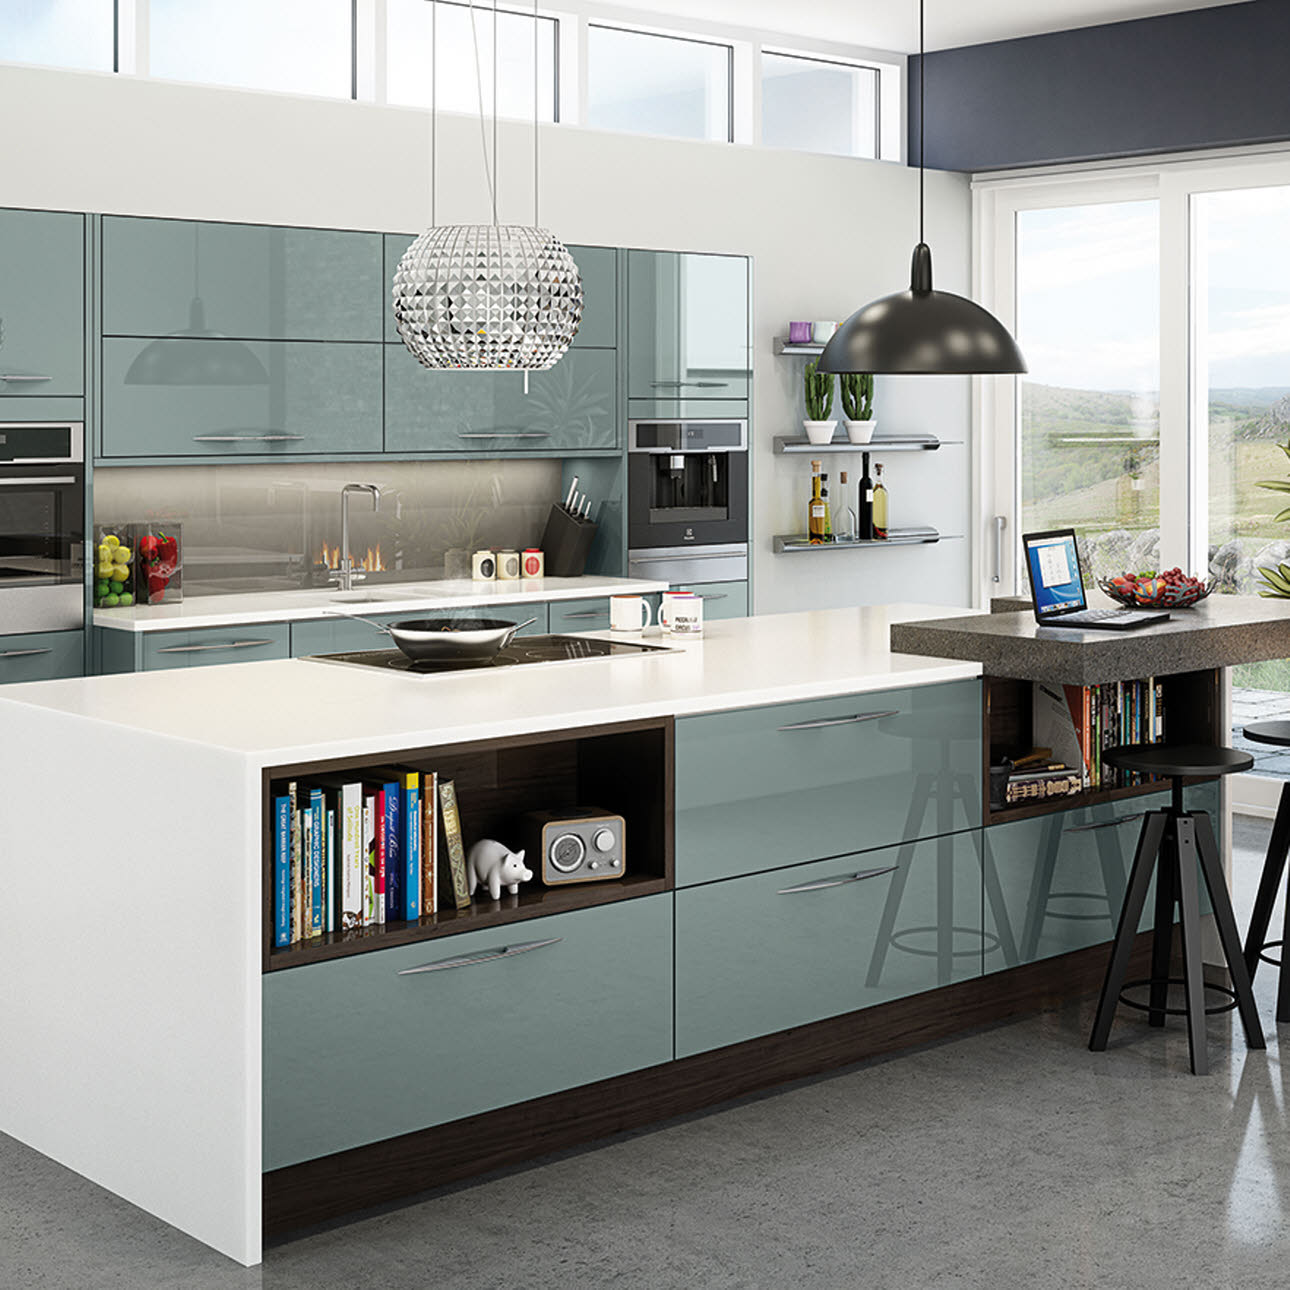 Fusion Blue fully installed kitchen